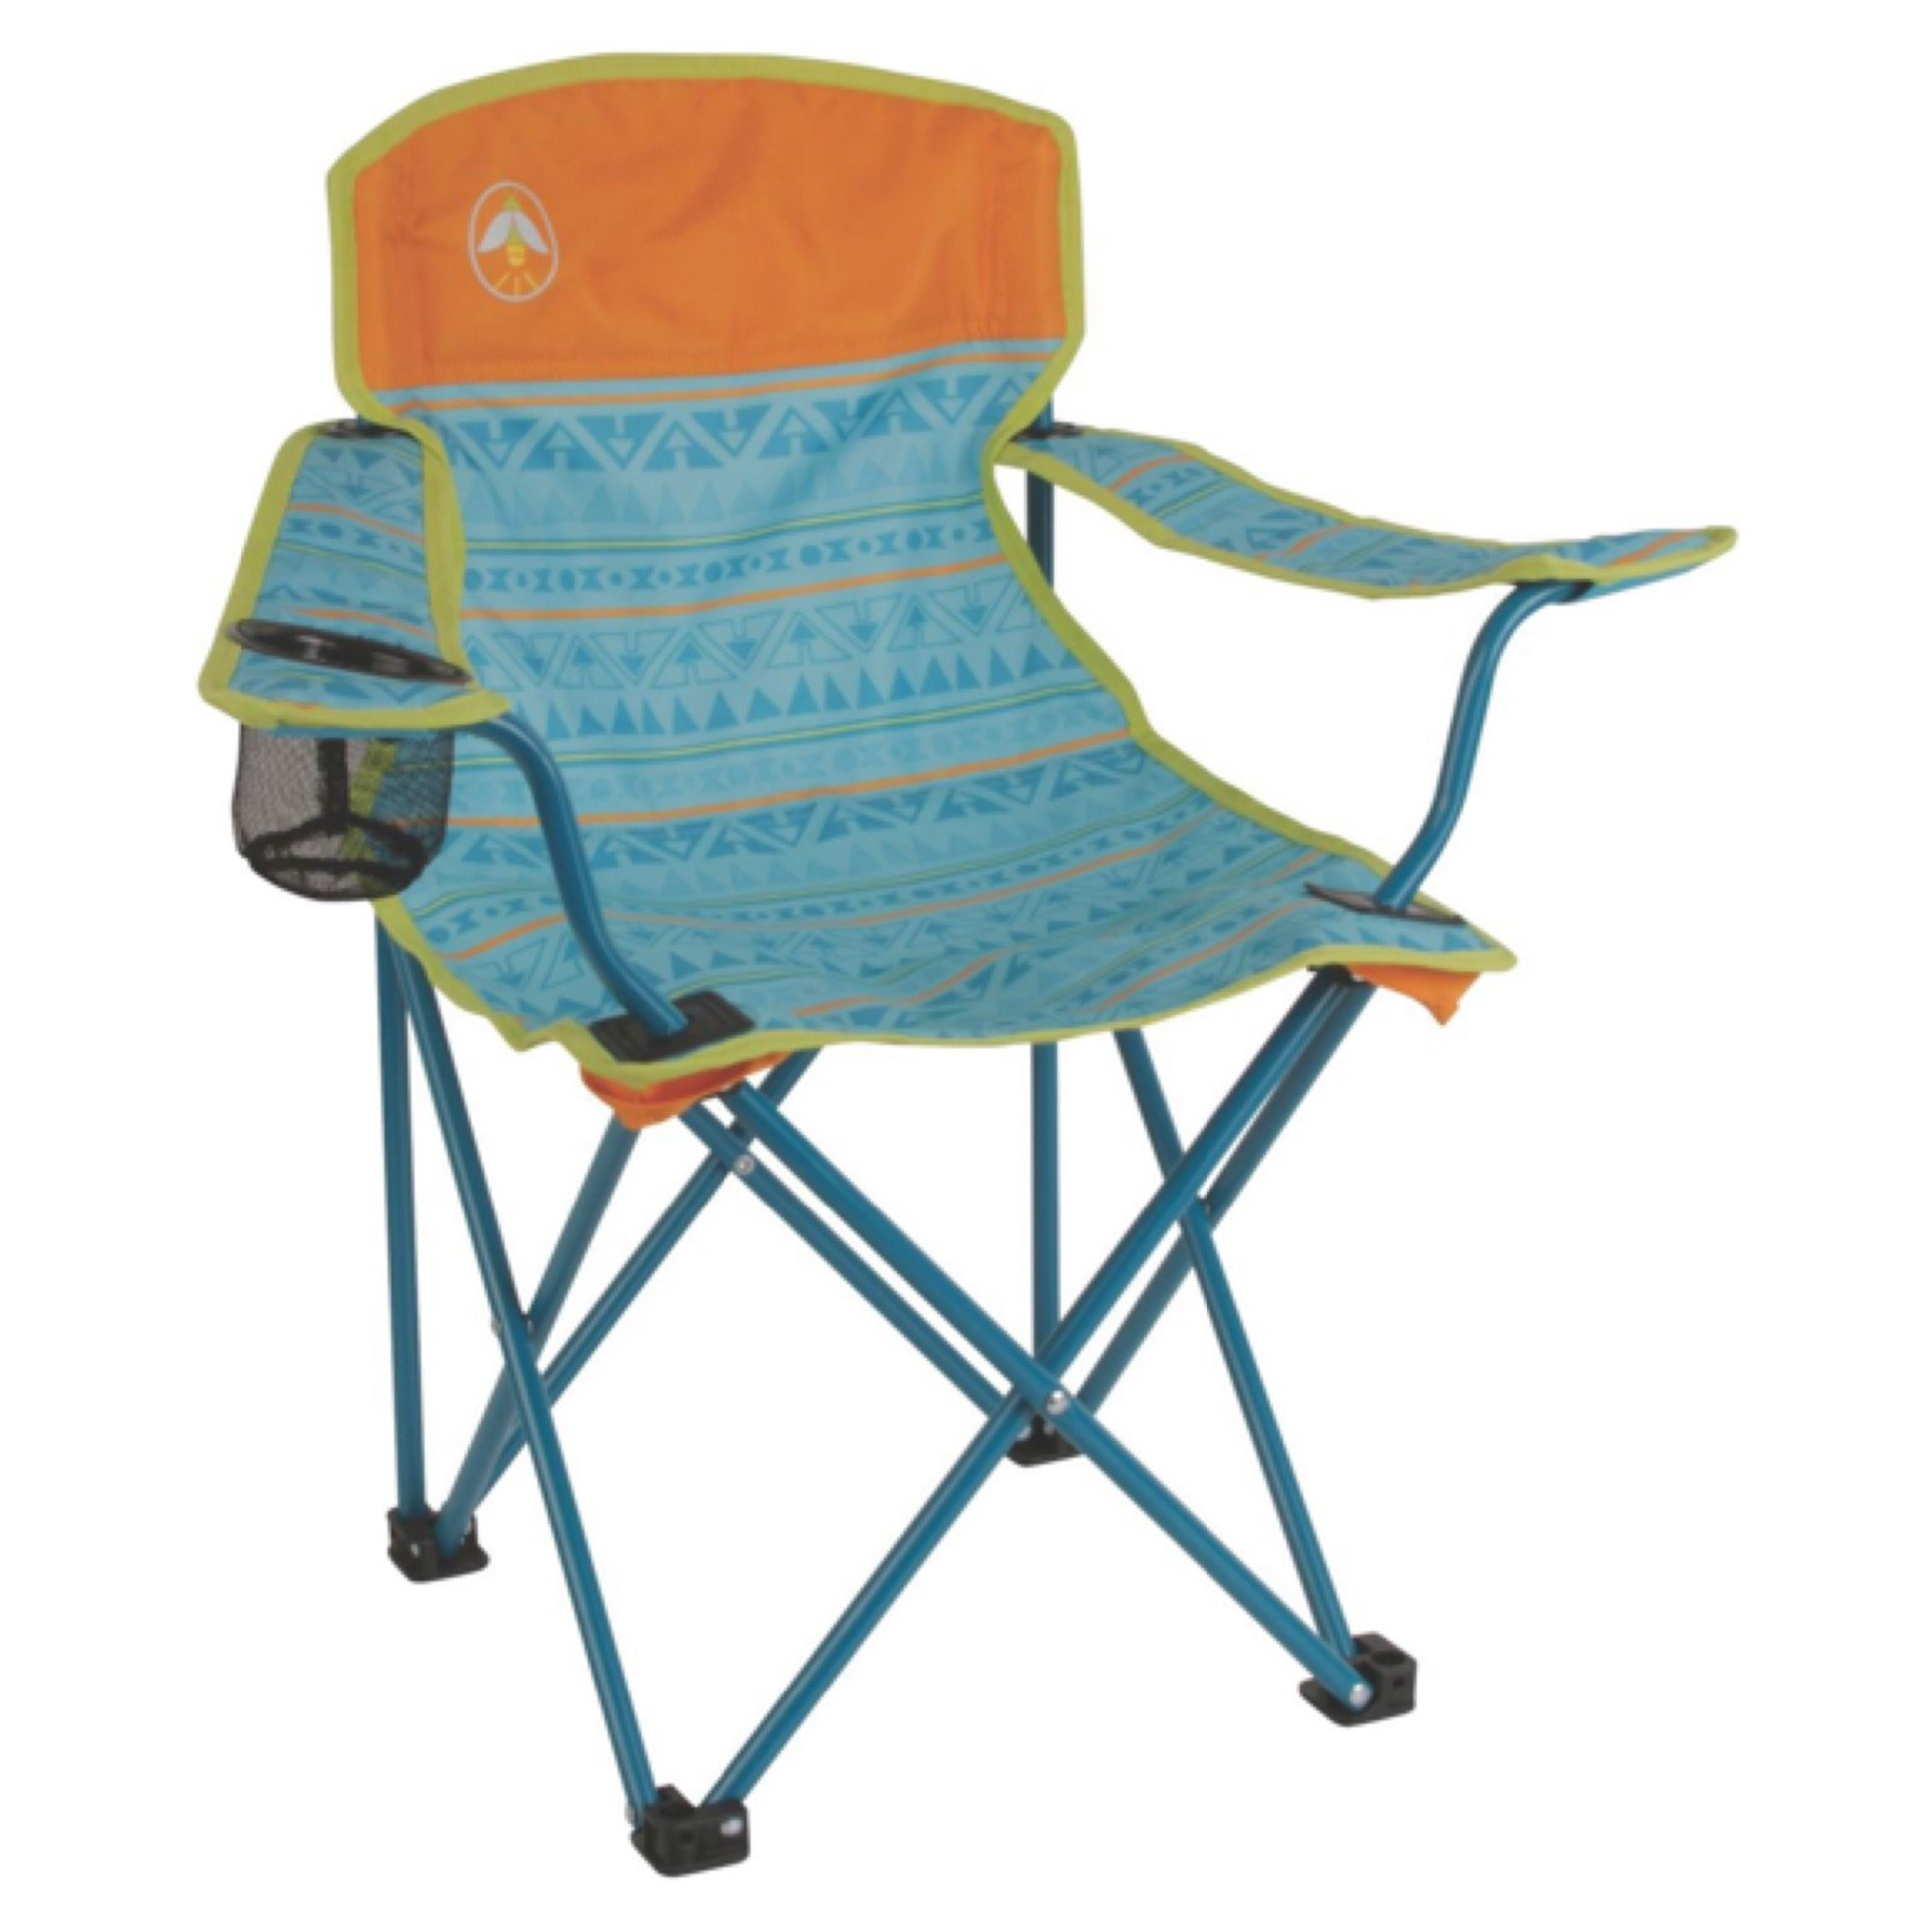 Coleman Kids Folding Chair with Cup Holder and Carry Bag by Coleman